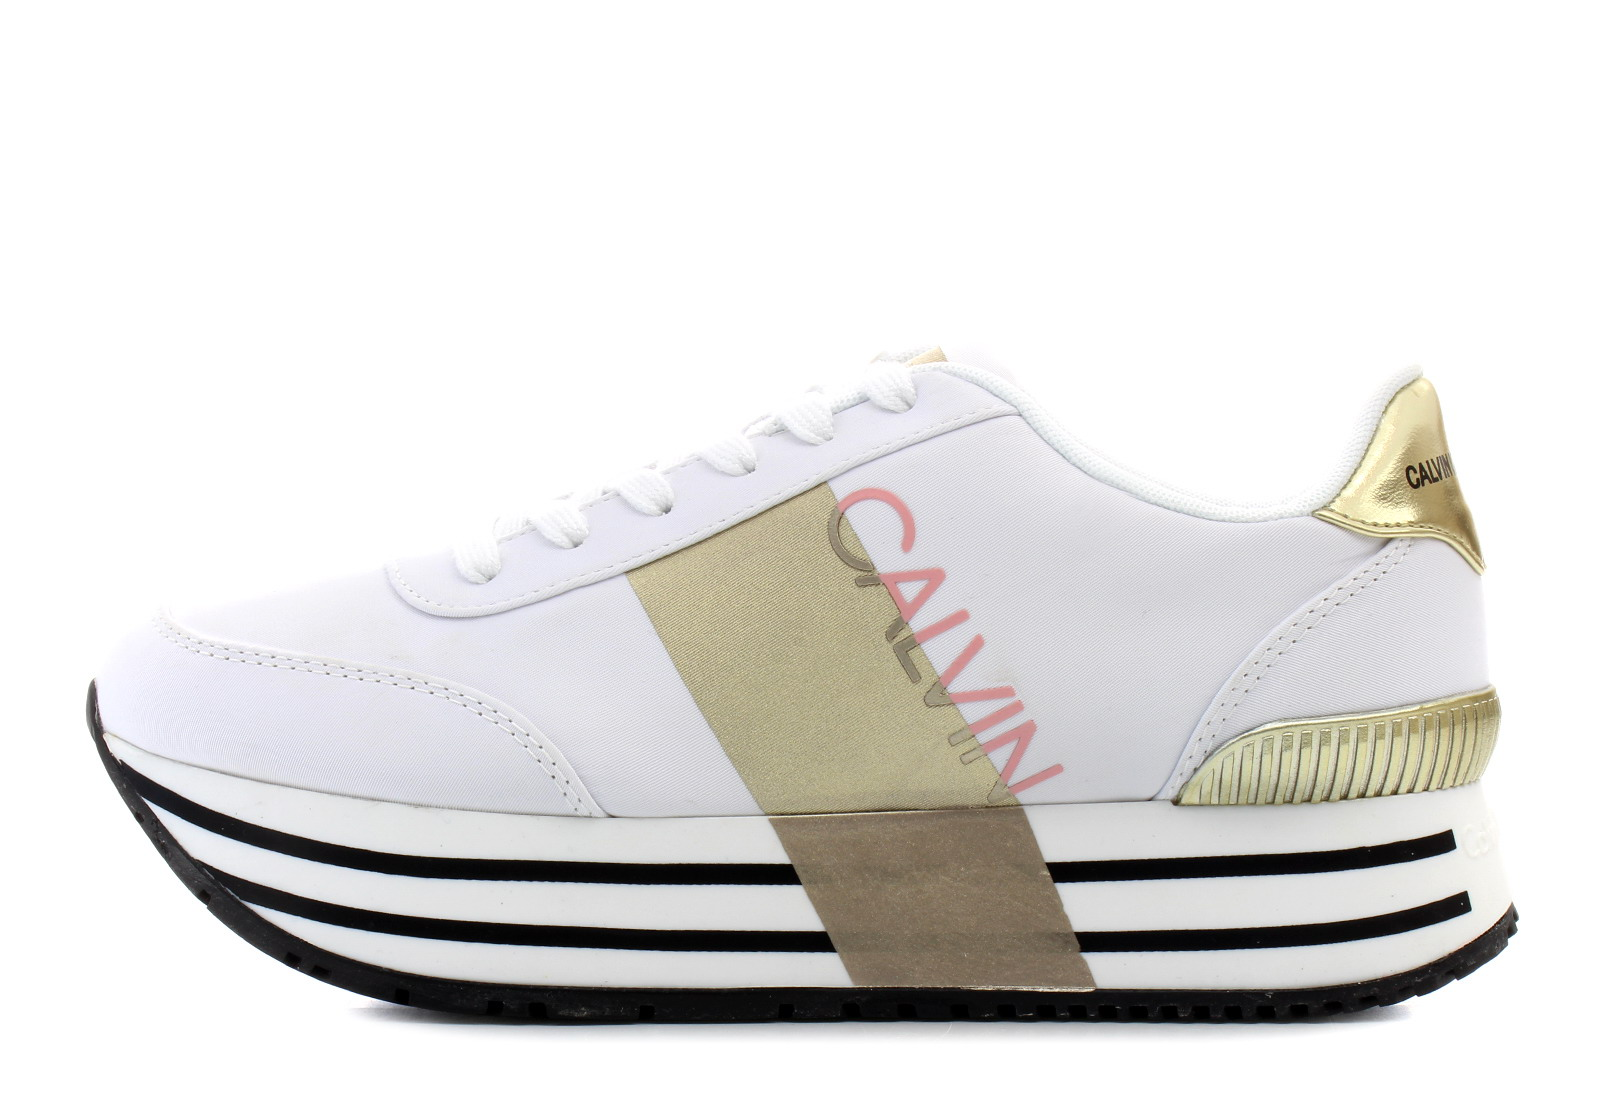 de9f131366 Calvin Klein Jeans Casual Bela Patike - Coretta - Office Shoes Srbija